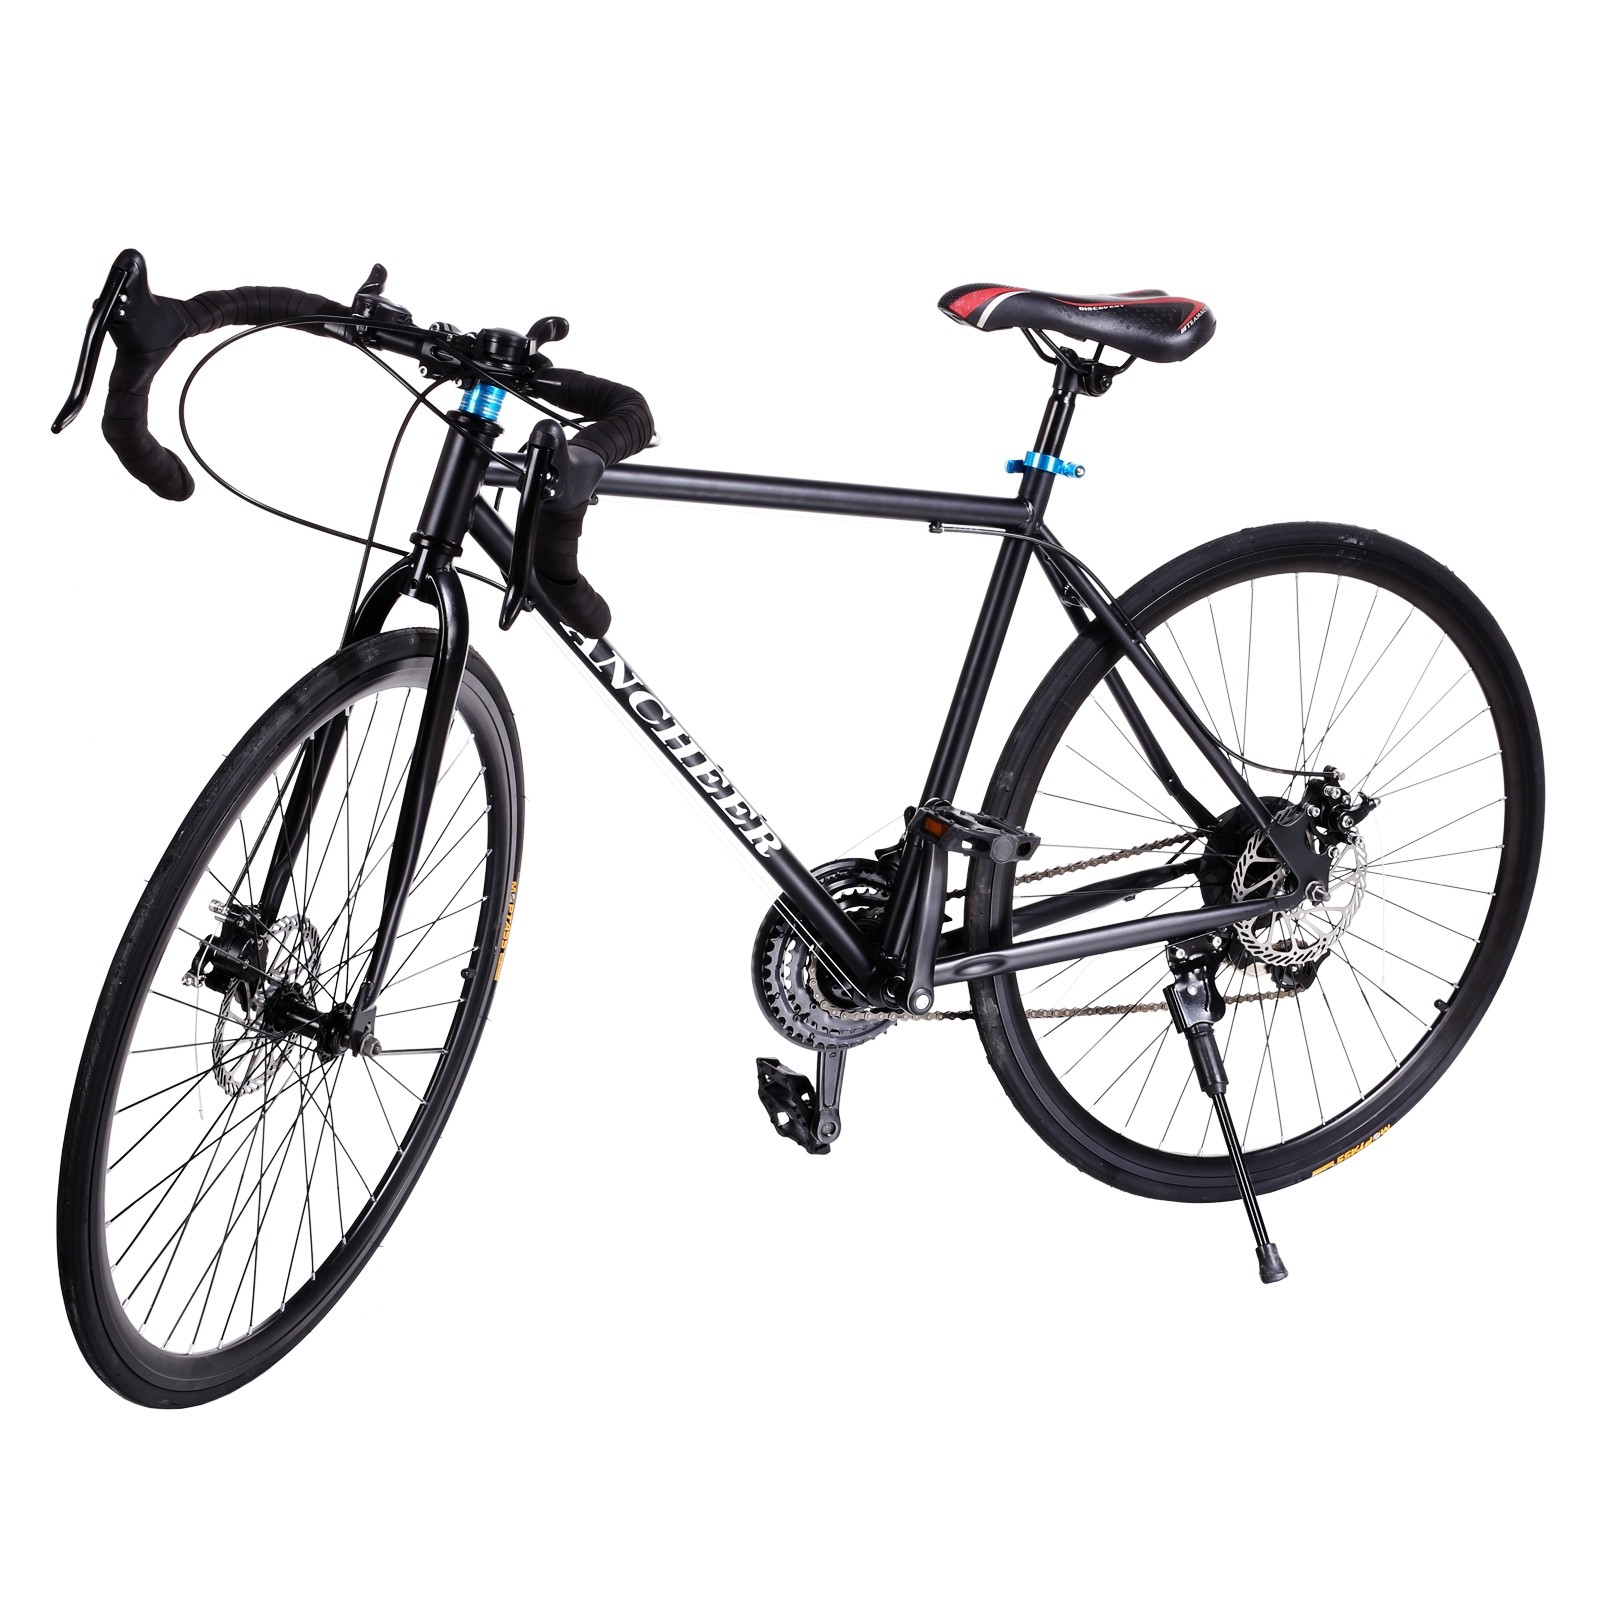 700c Road Bike Commuter Bike Shimano 21 Speed Aluminum Alloy Dual Disc brakes